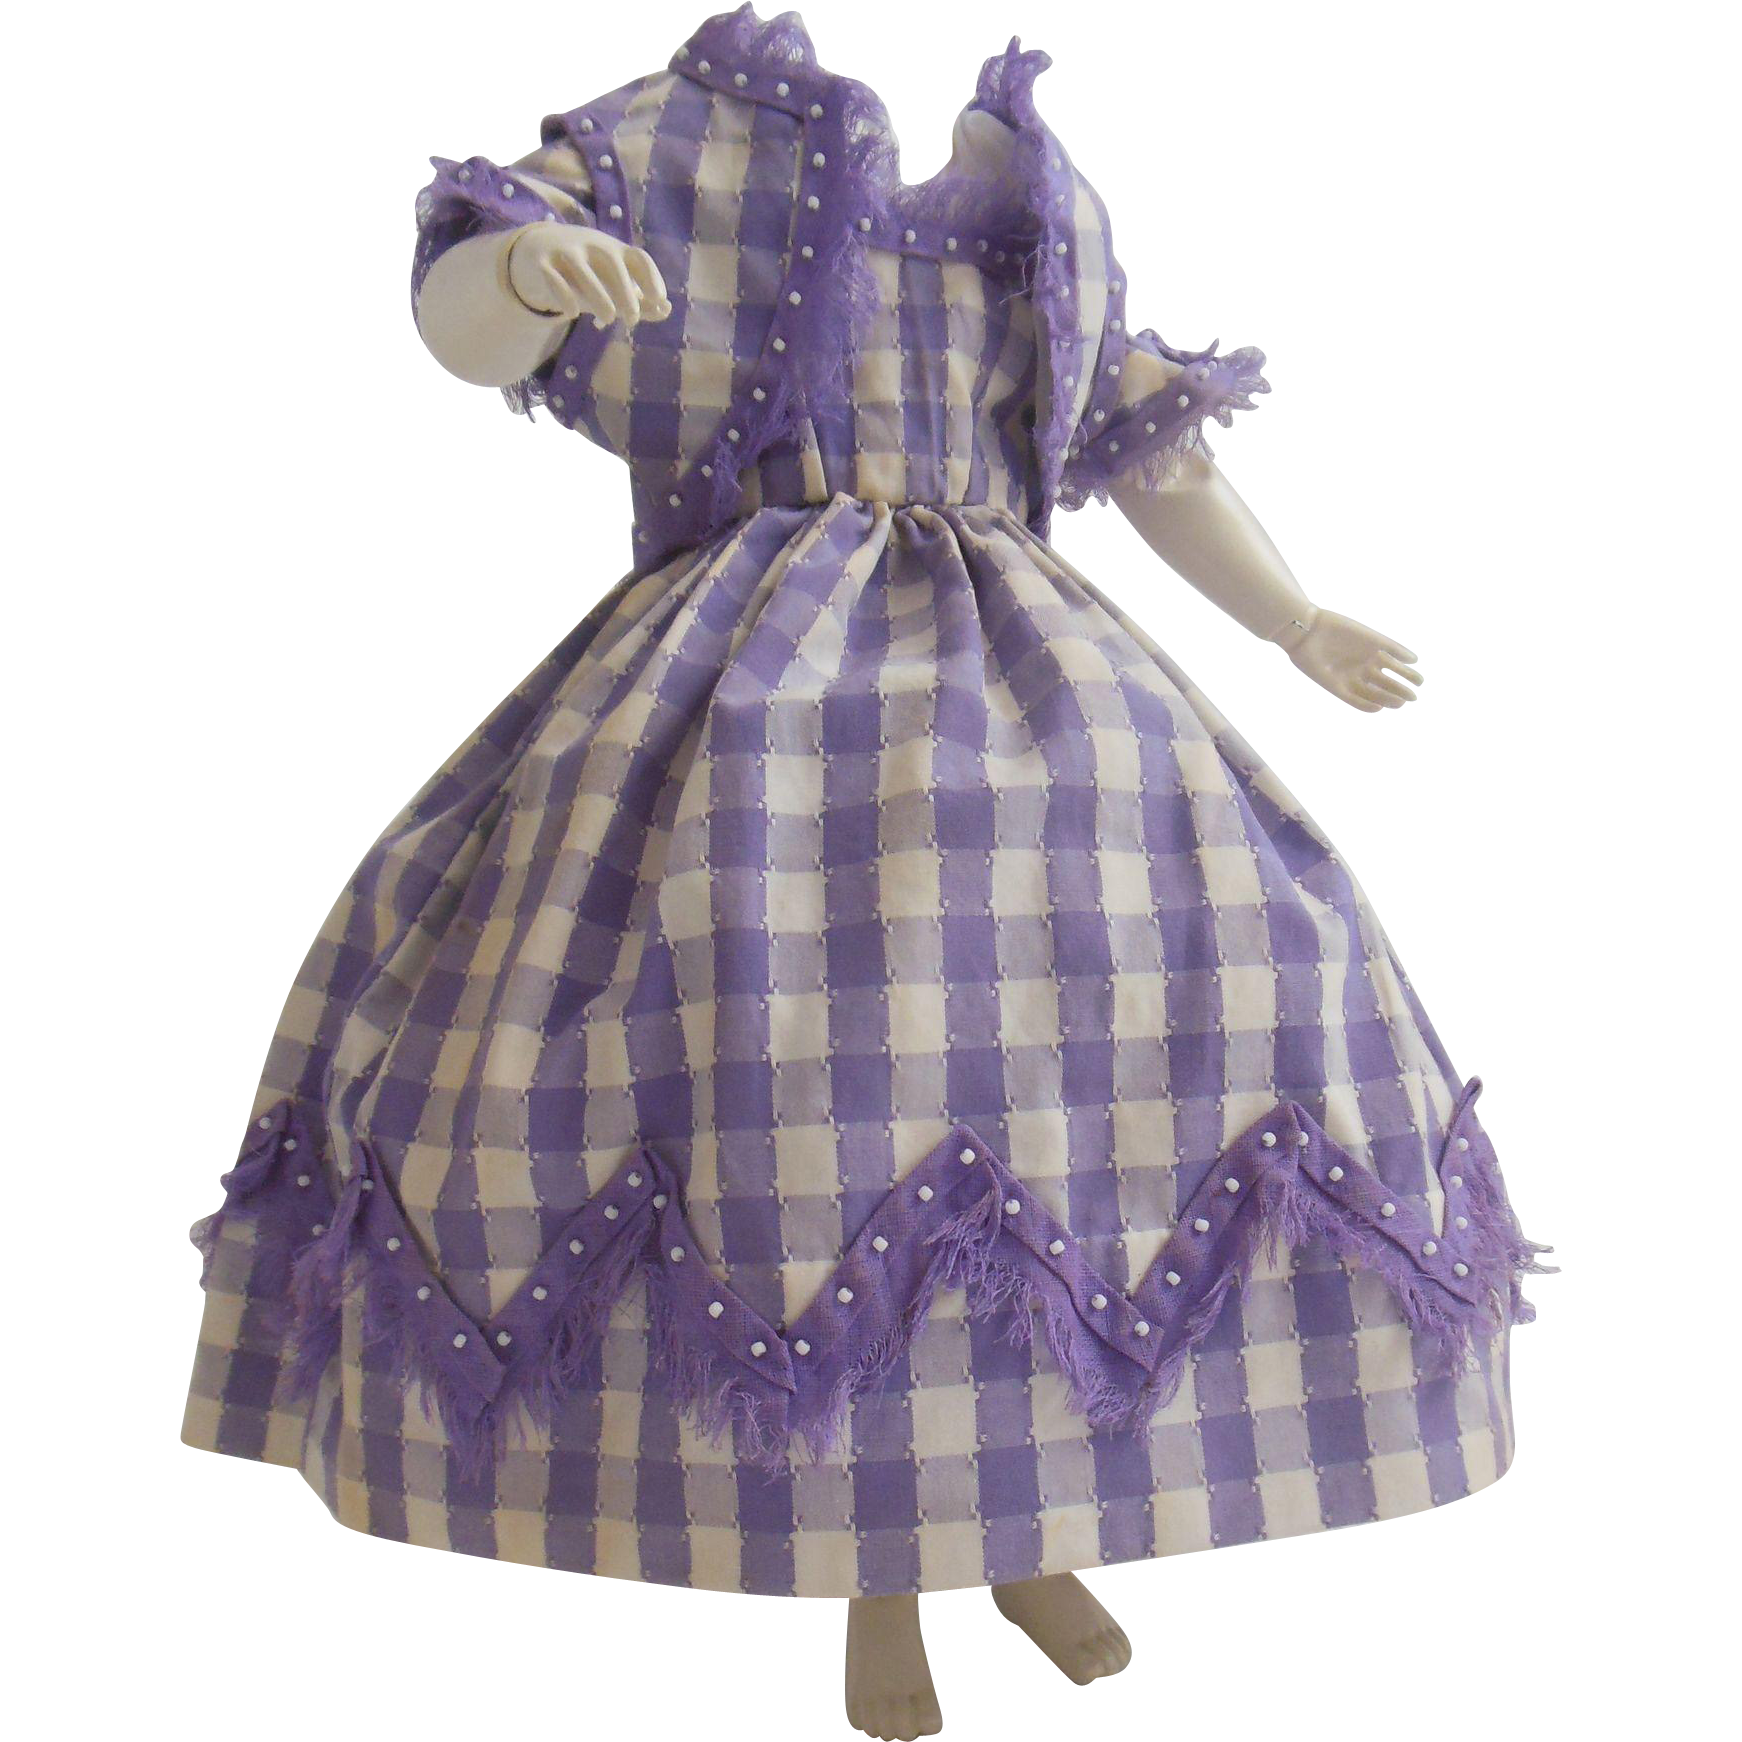 Wonderful dress for Huret or early fashion doll enfantine style